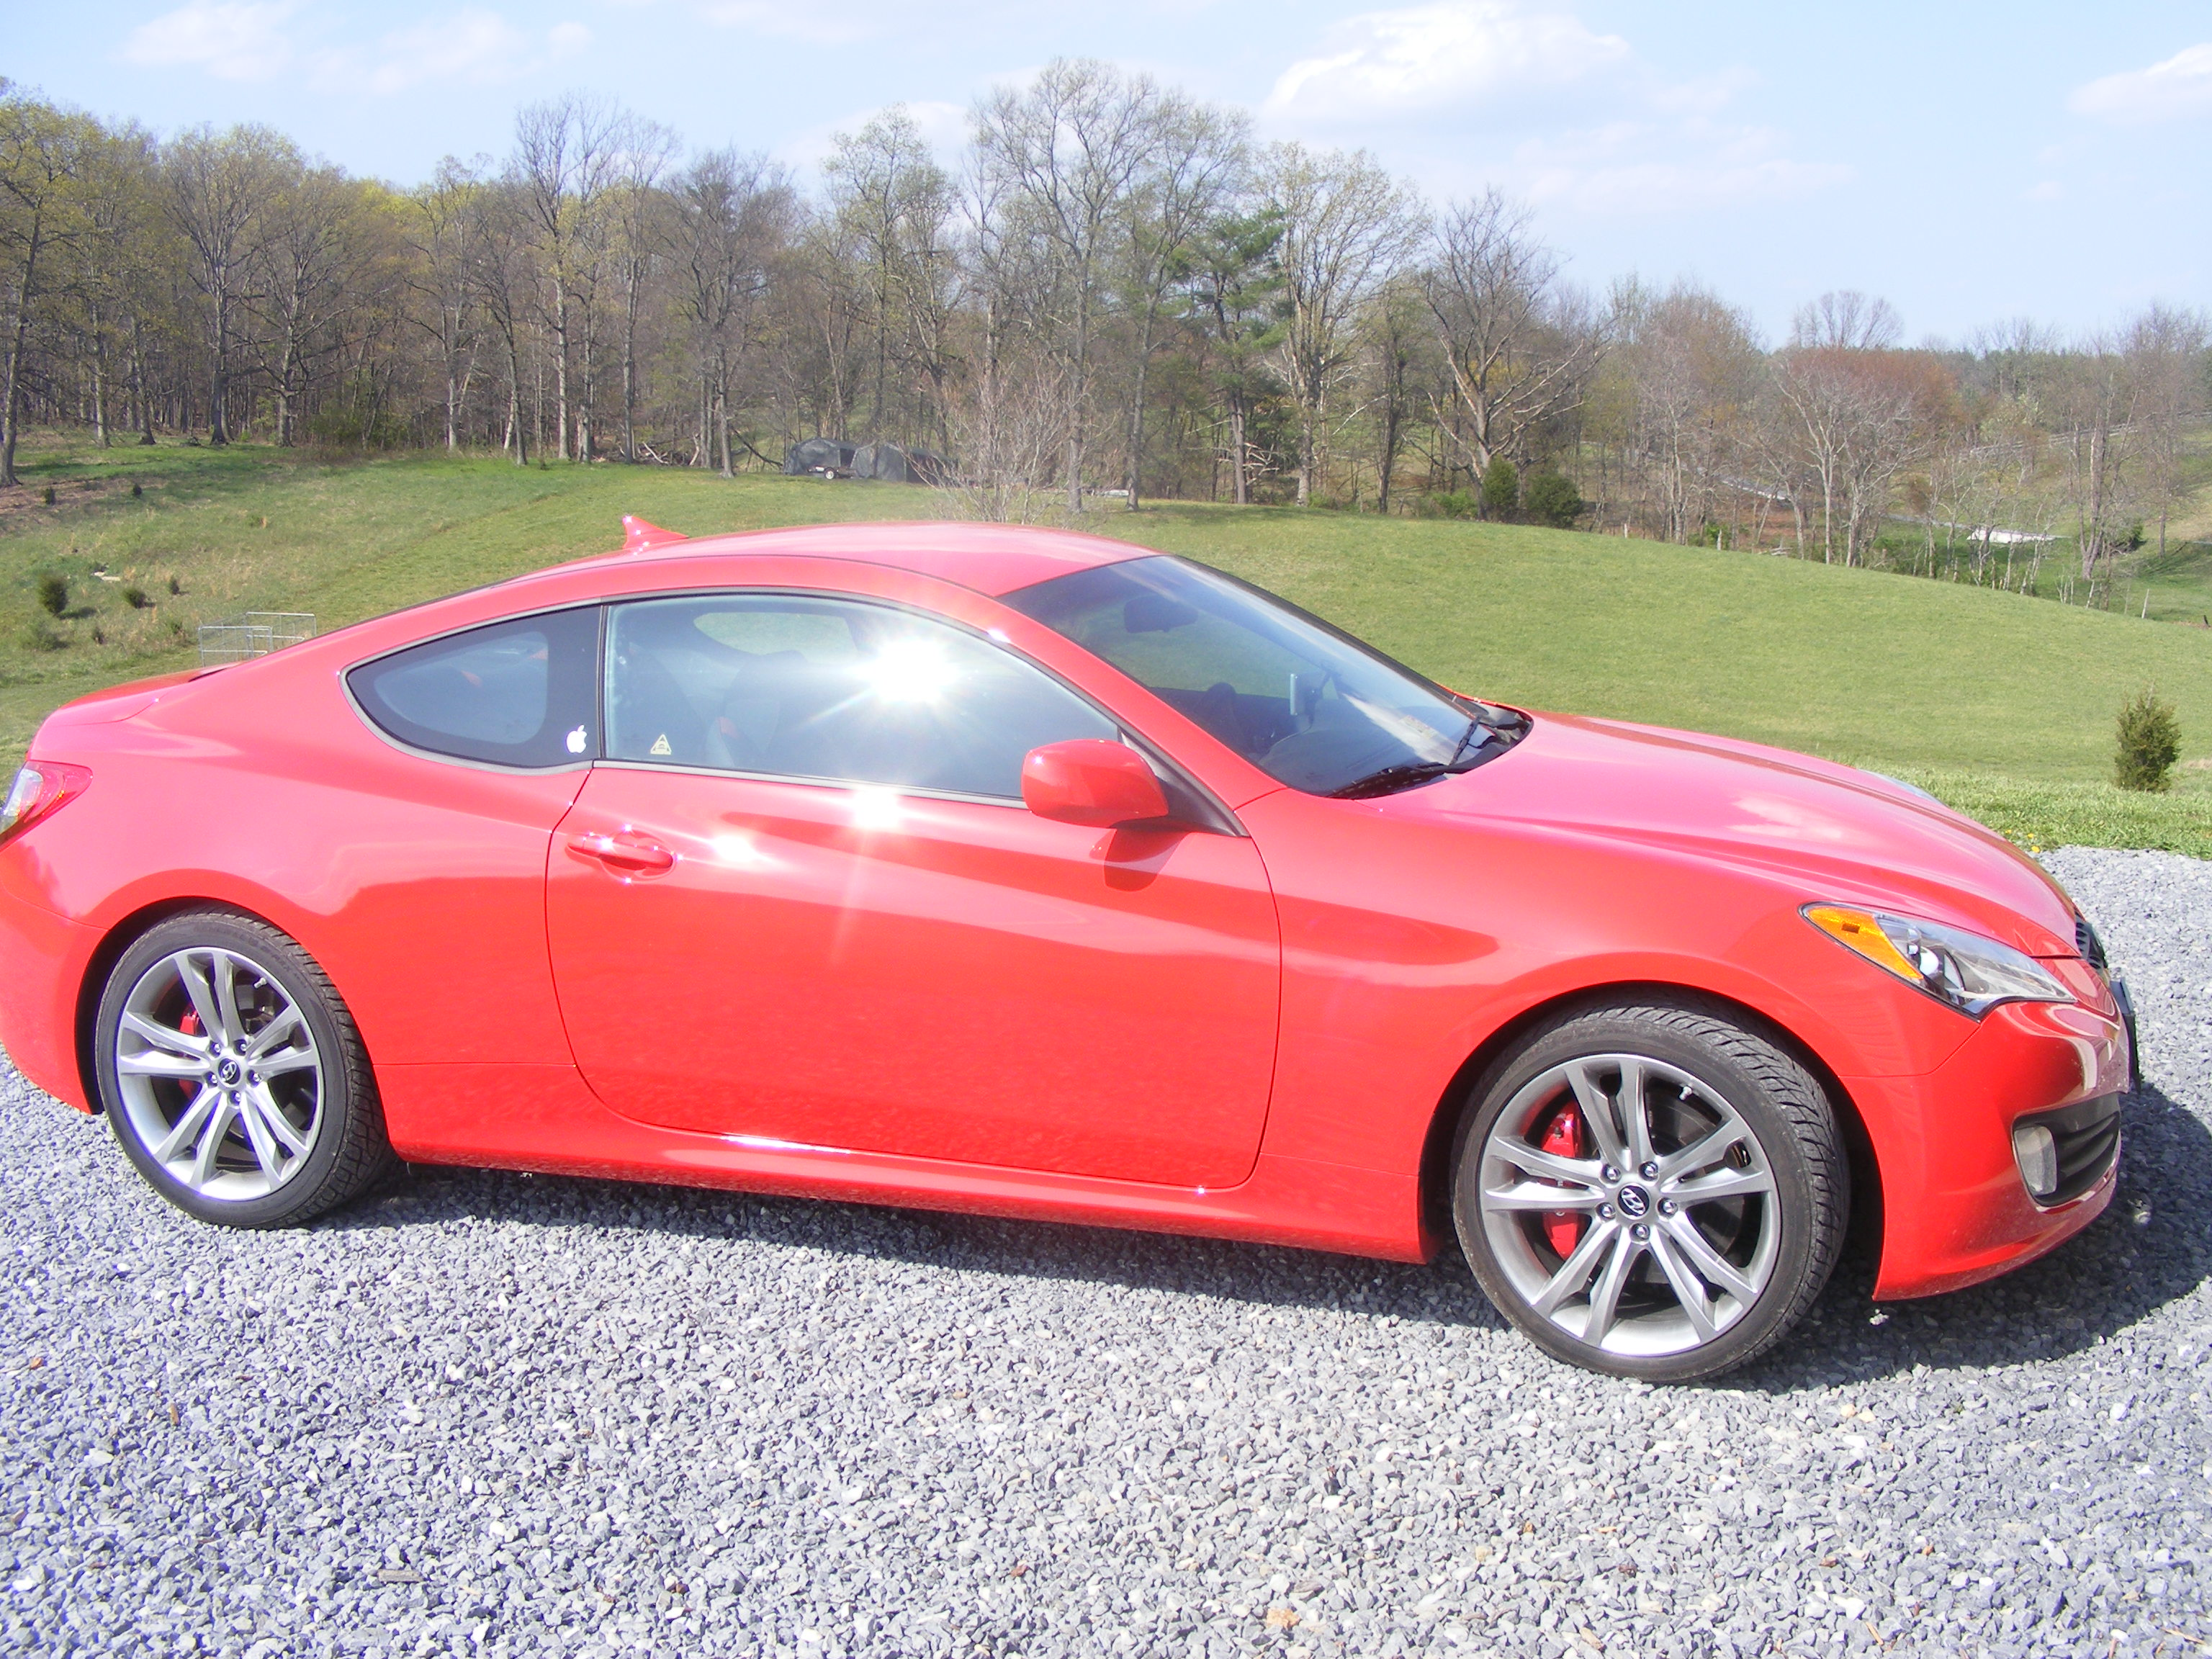 2012 hyundai genesis coupe 3 8 r spec review hammerhead armament blog. Black Bedroom Furniture Sets. Home Design Ideas